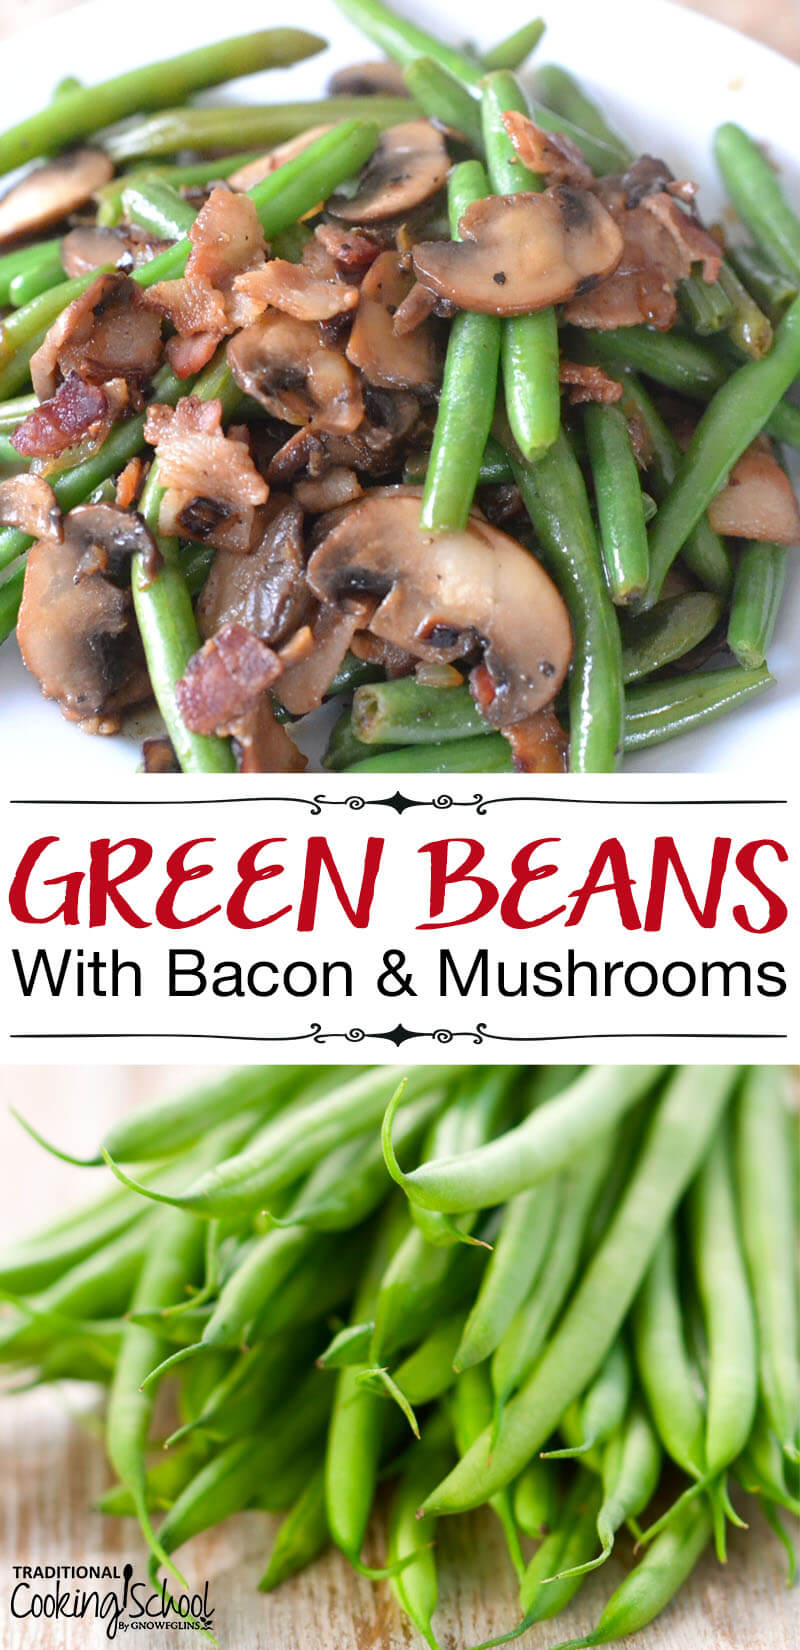 Green Beans with Bacon & Mushrooms | Sick of green bean casserole that uses canned cream of mushroom soup? Want a Real Food version instead? My family enjoys this recipe throughout the year -- especially during the holiday season. No canned mystery soups necessary! | TraditionalCookingSchool.com